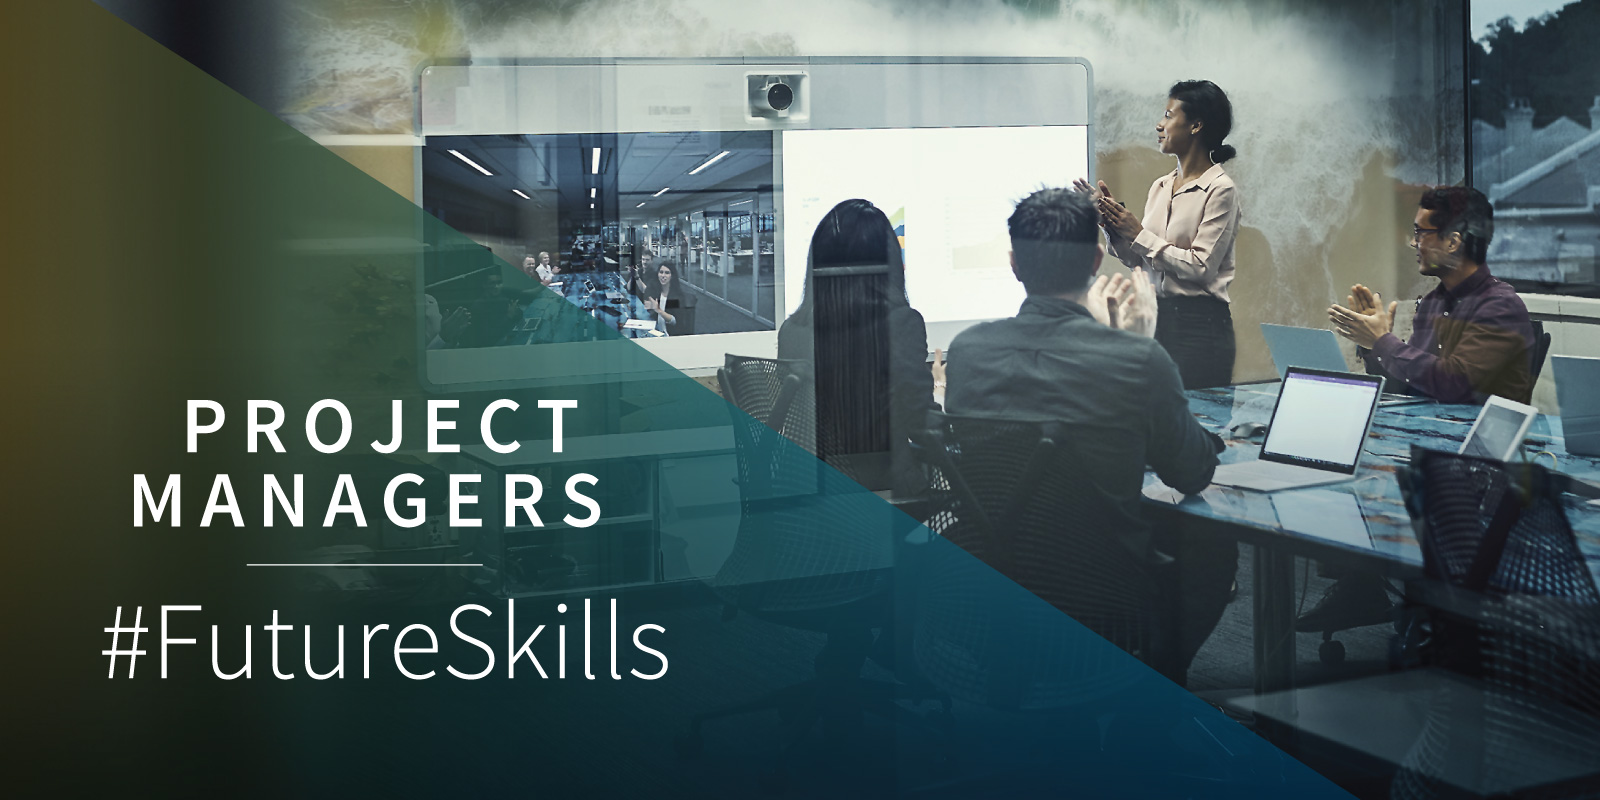 Project Management: What Skills Do Project Managers Need?